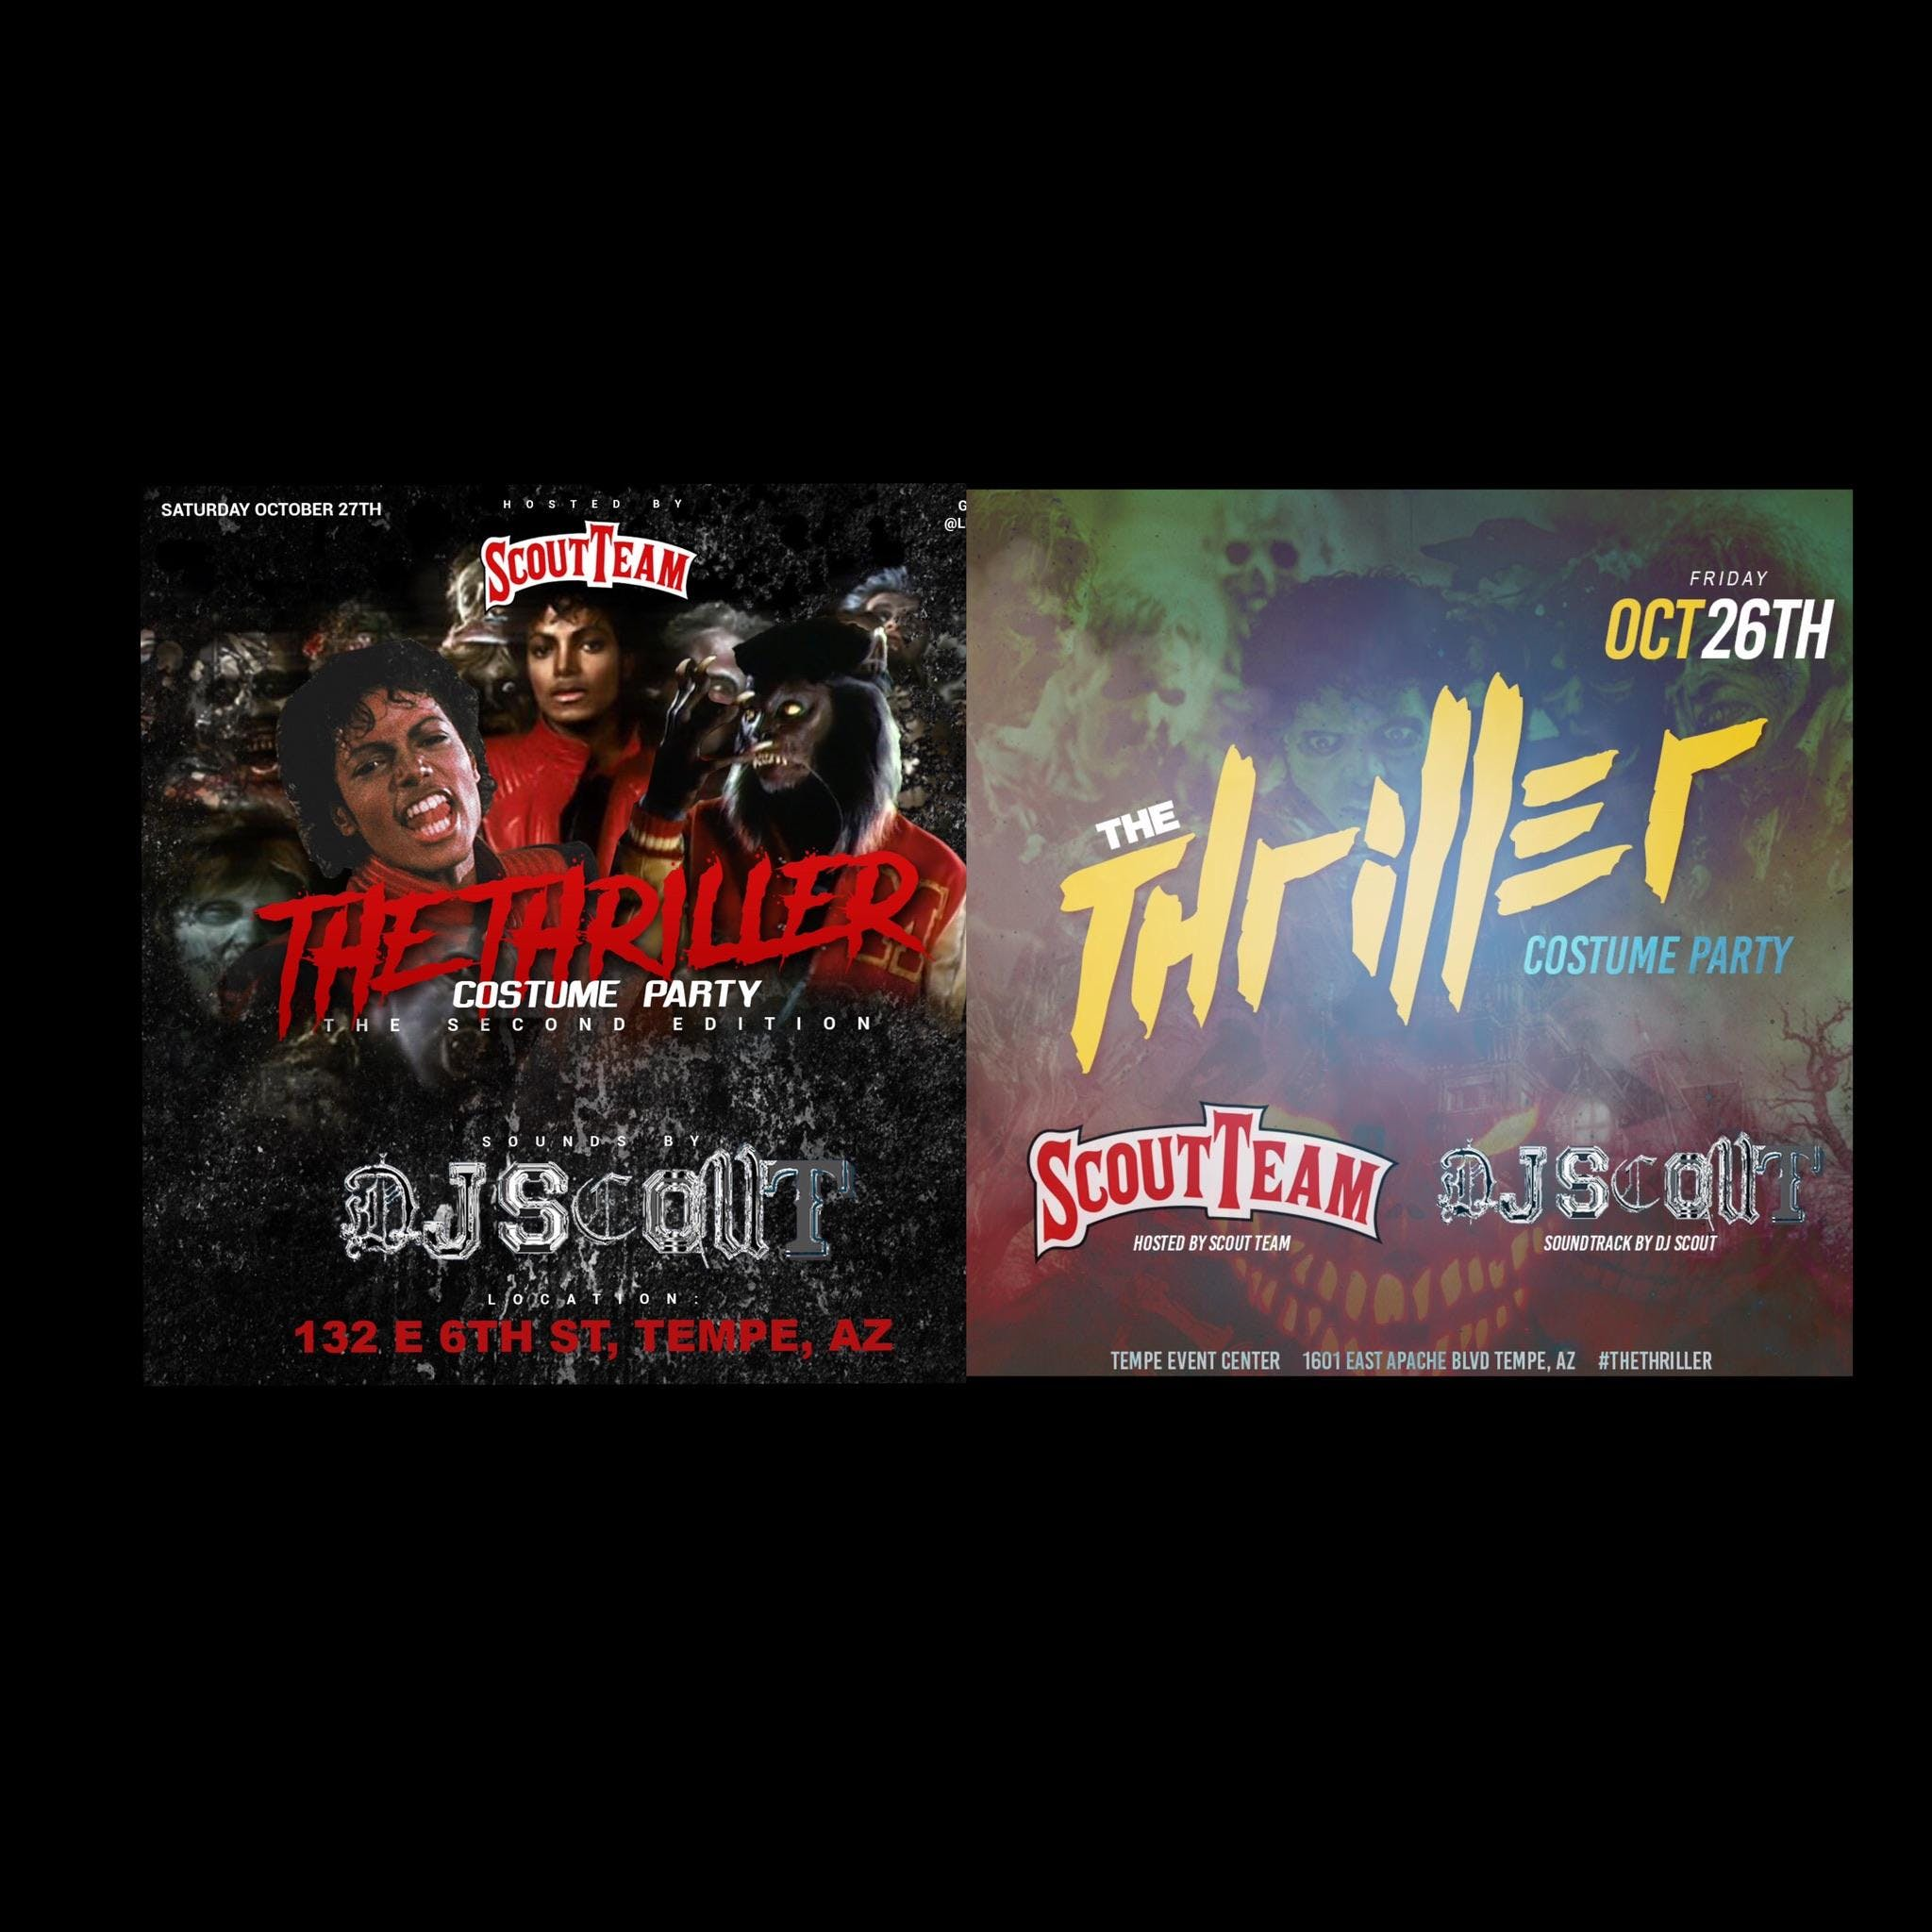 Scout Team Presents: The Thriller Costume Party PT 1 & 2